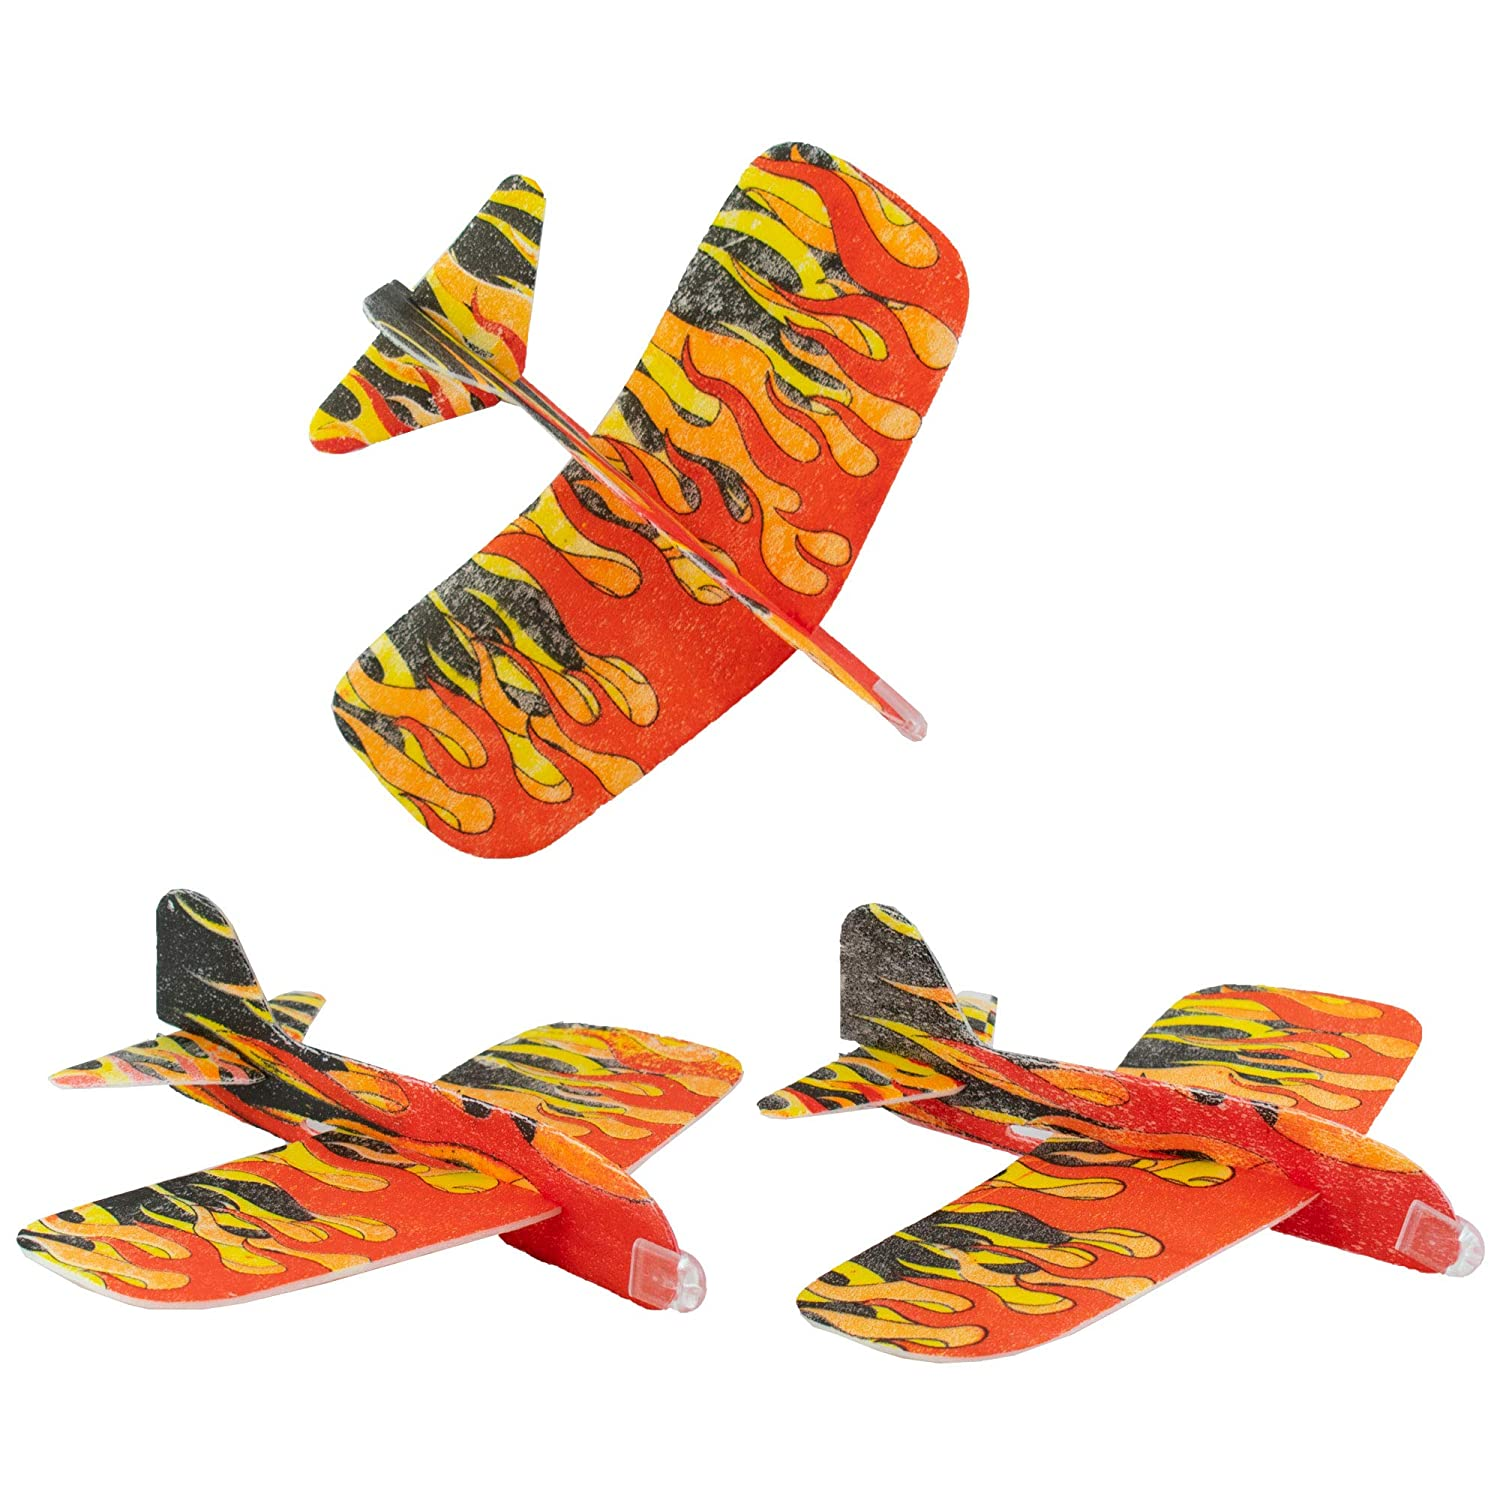 Amazon.com: Giggletime Toy Co. Flames Design Glider - (48 ...